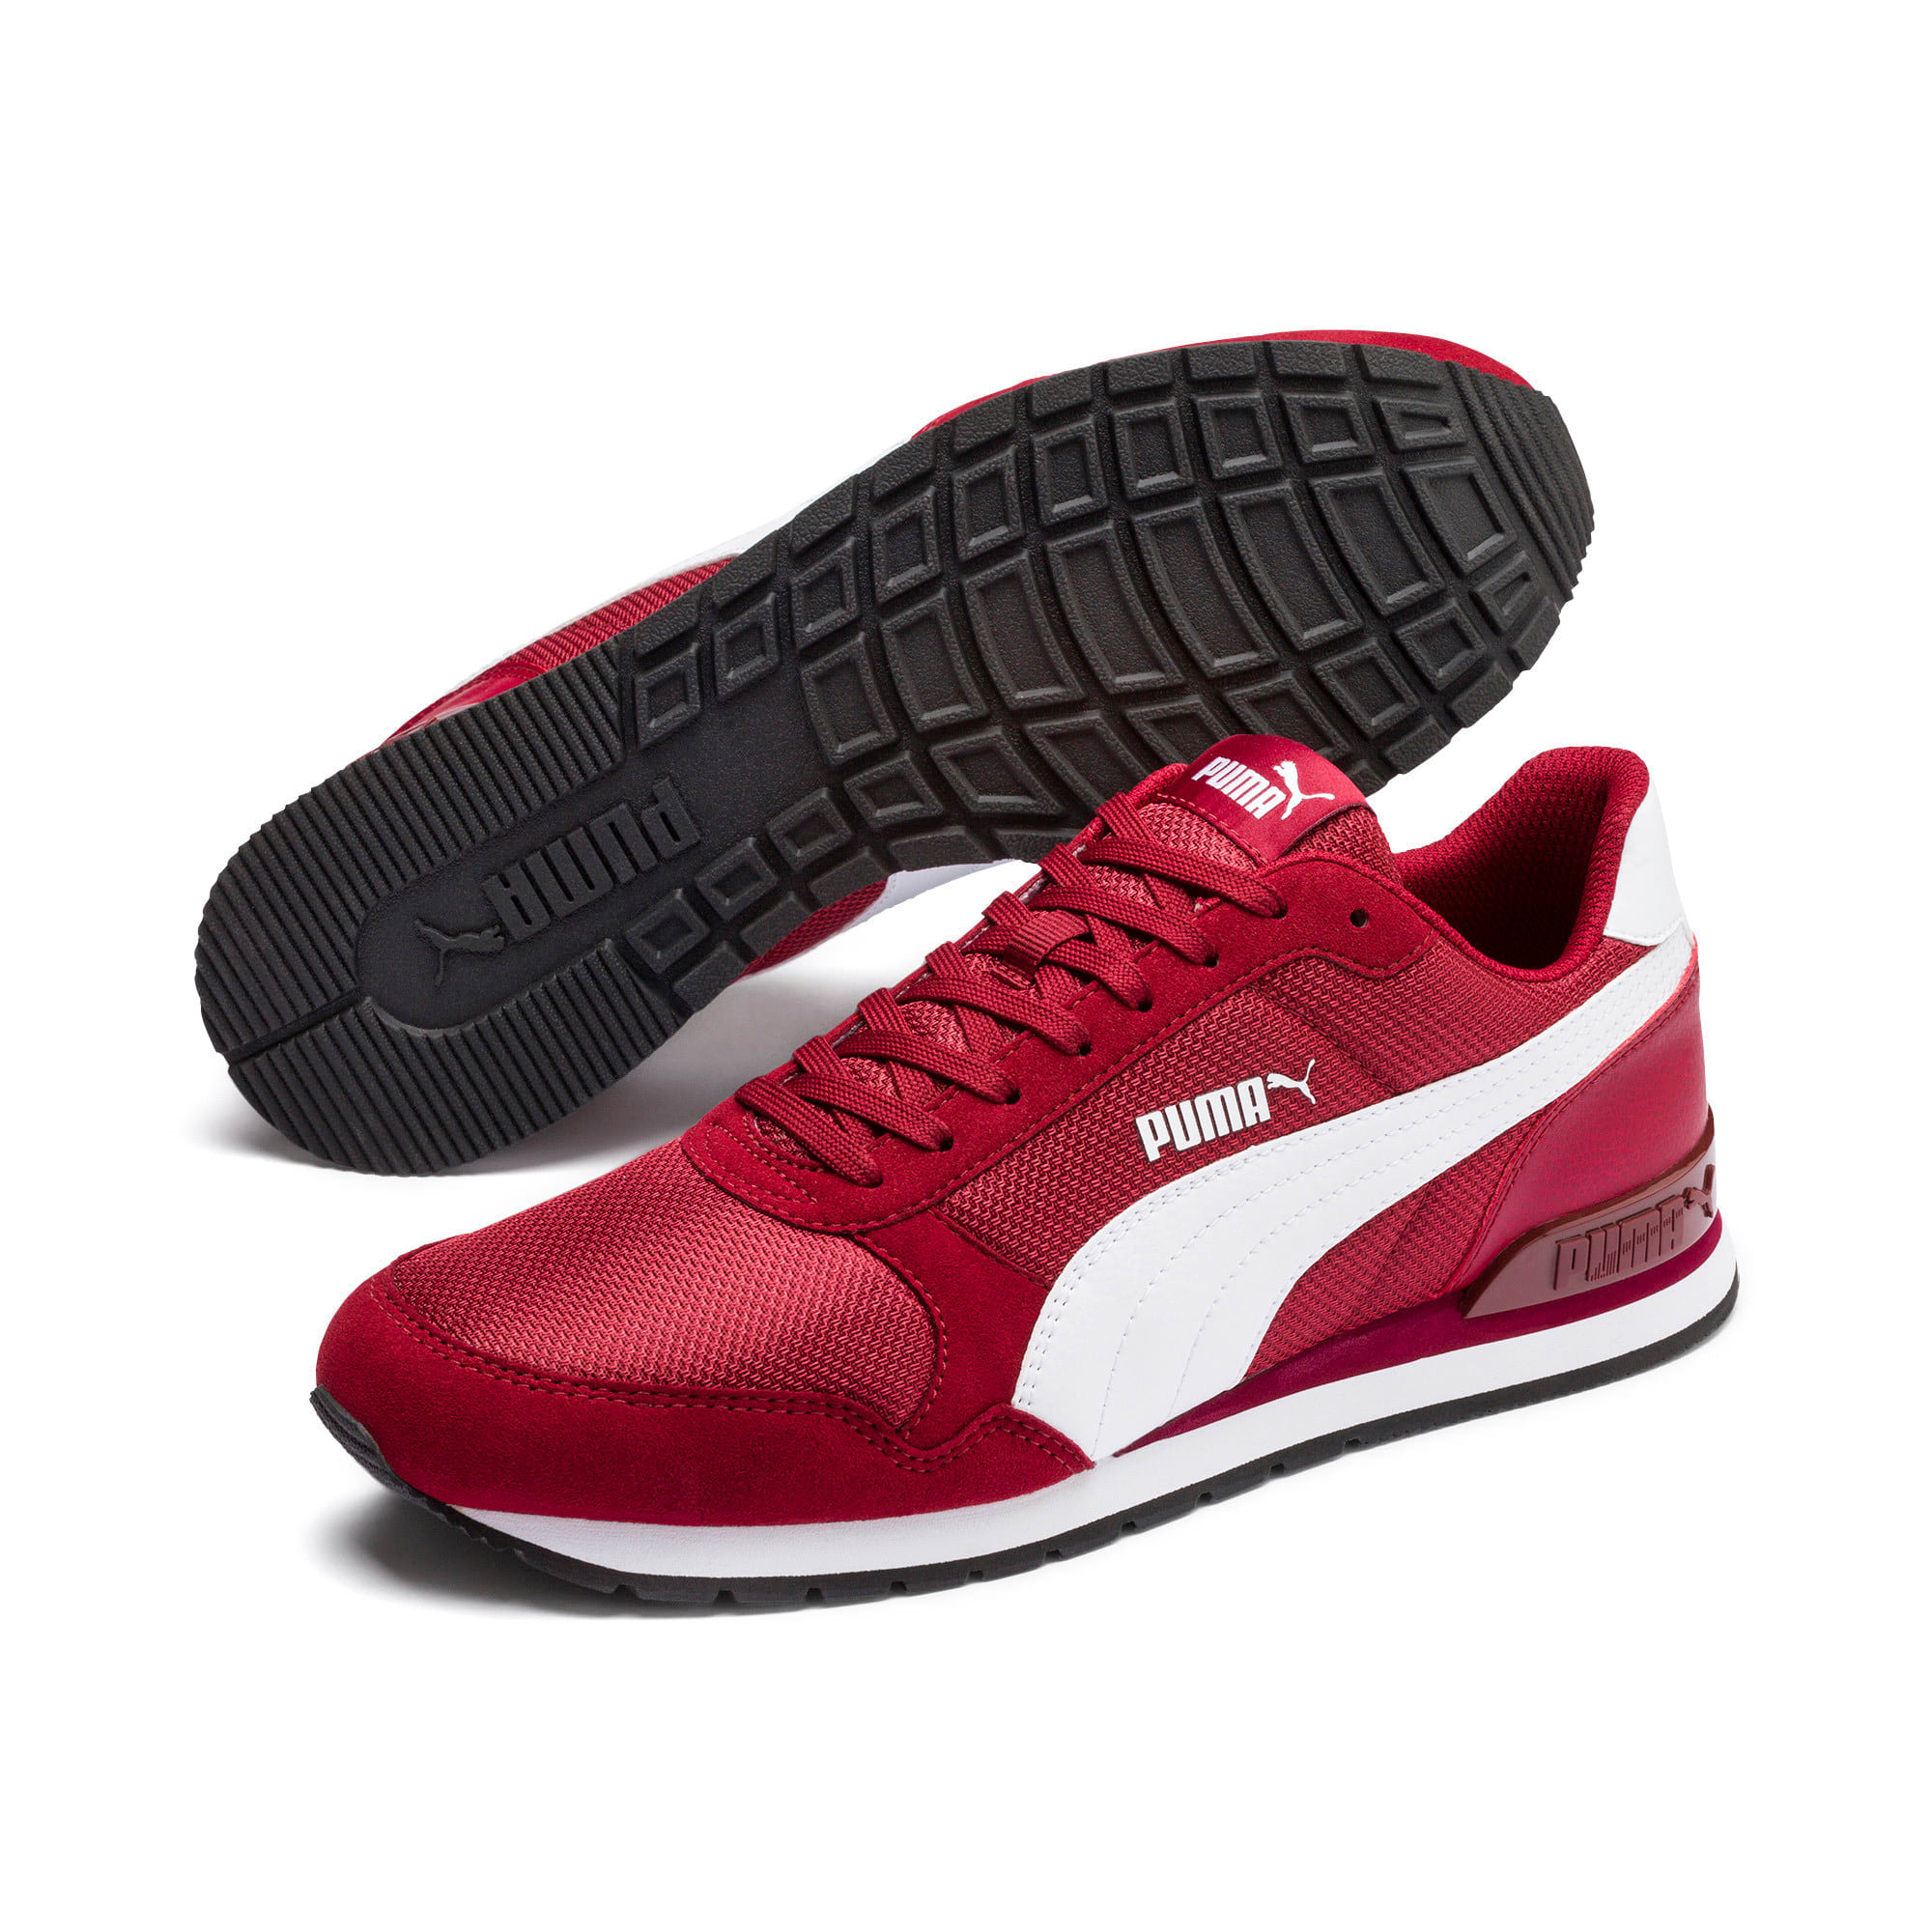 Thumbnail 3 of ST Runner v2 Mesh Sneakers, Rhubarb-Puma White, medium